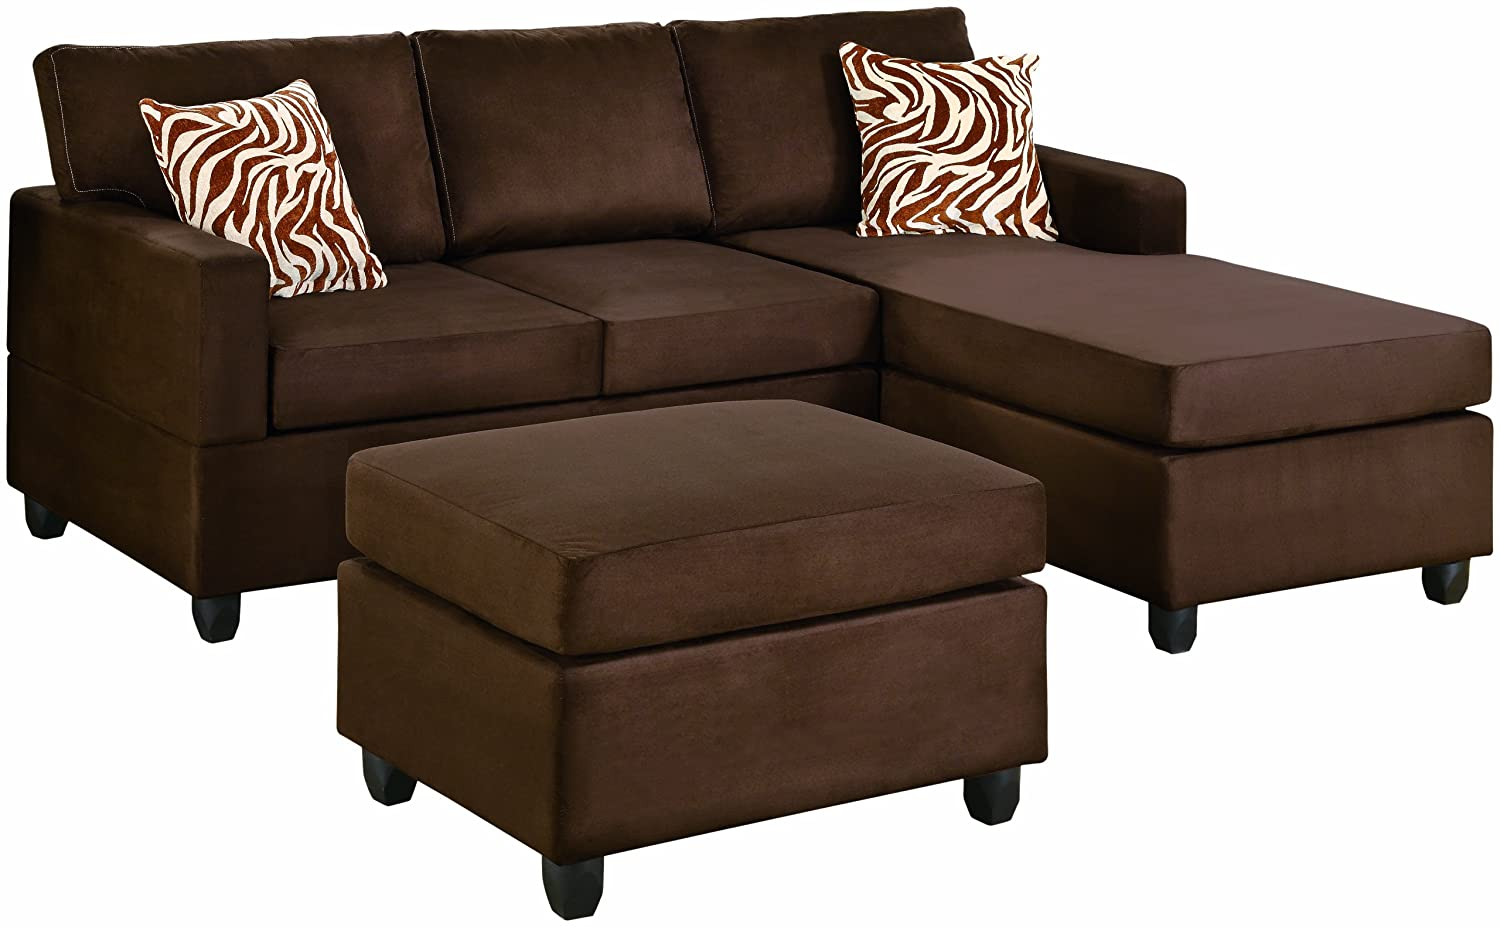 Small Sectional Couch Plain Couches For Apartments Full Image